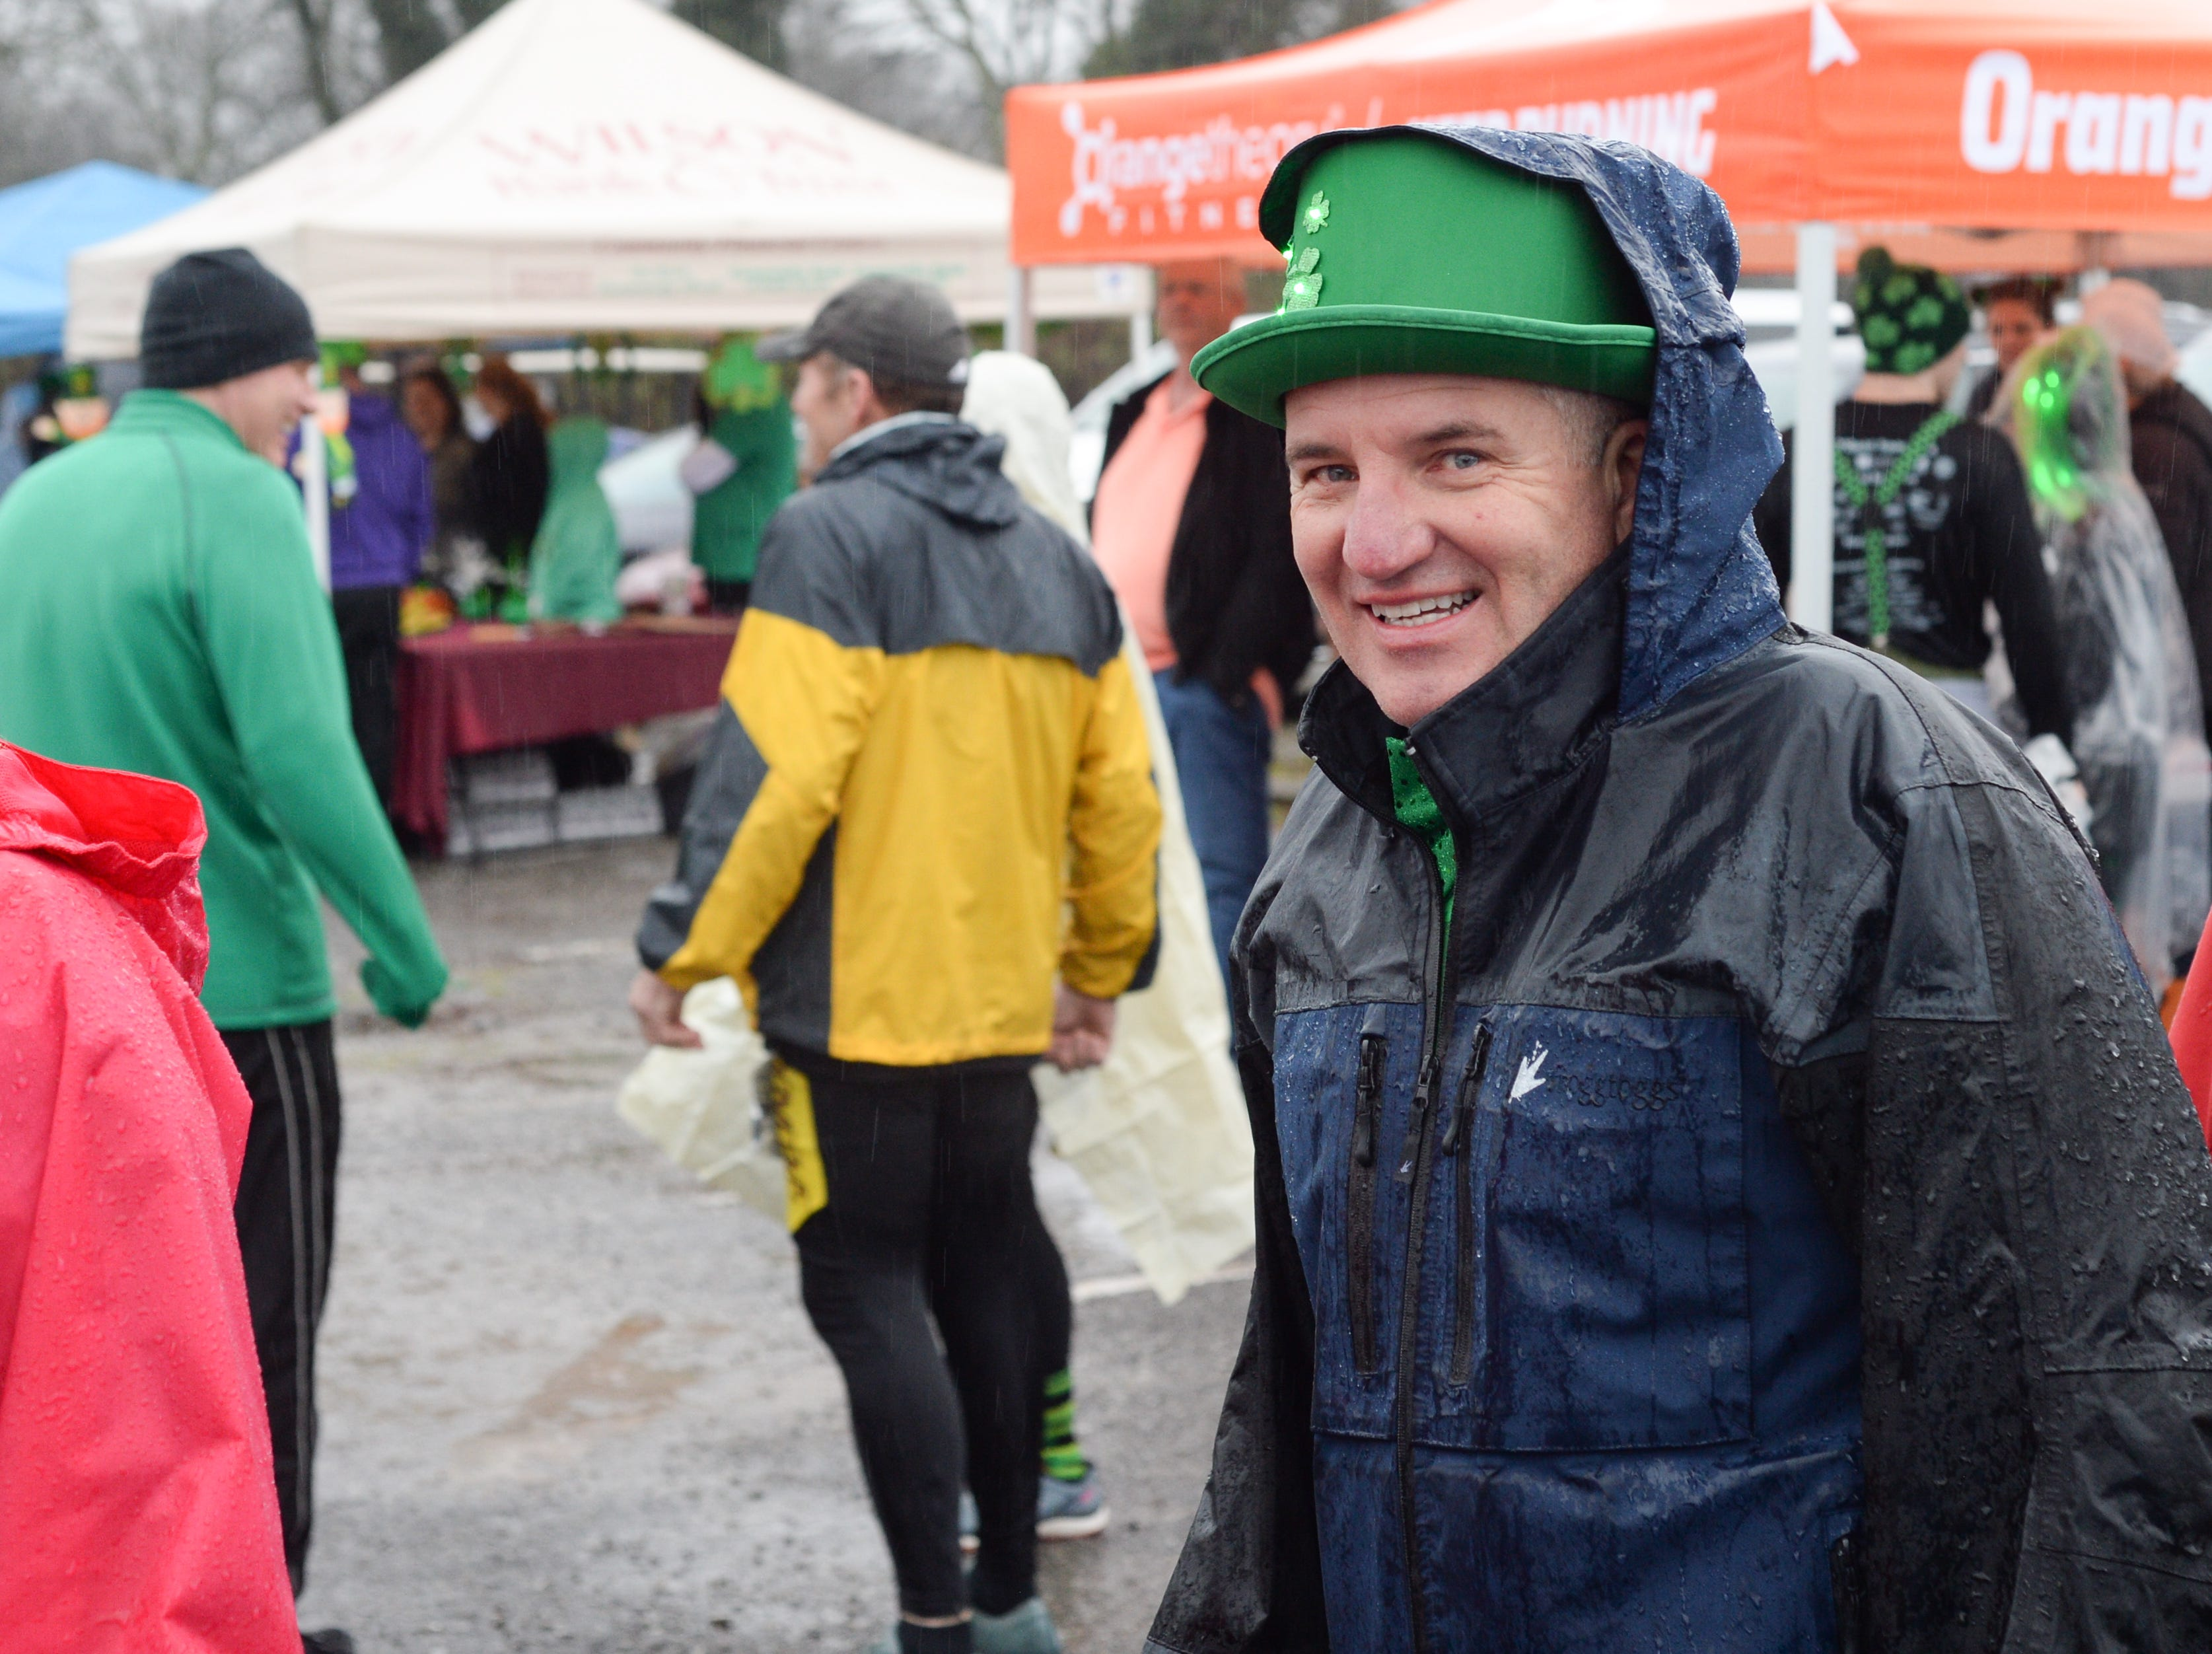 Participants braved the rain to participate in the Gallatin Shamrock Run on Saturday, March 9.